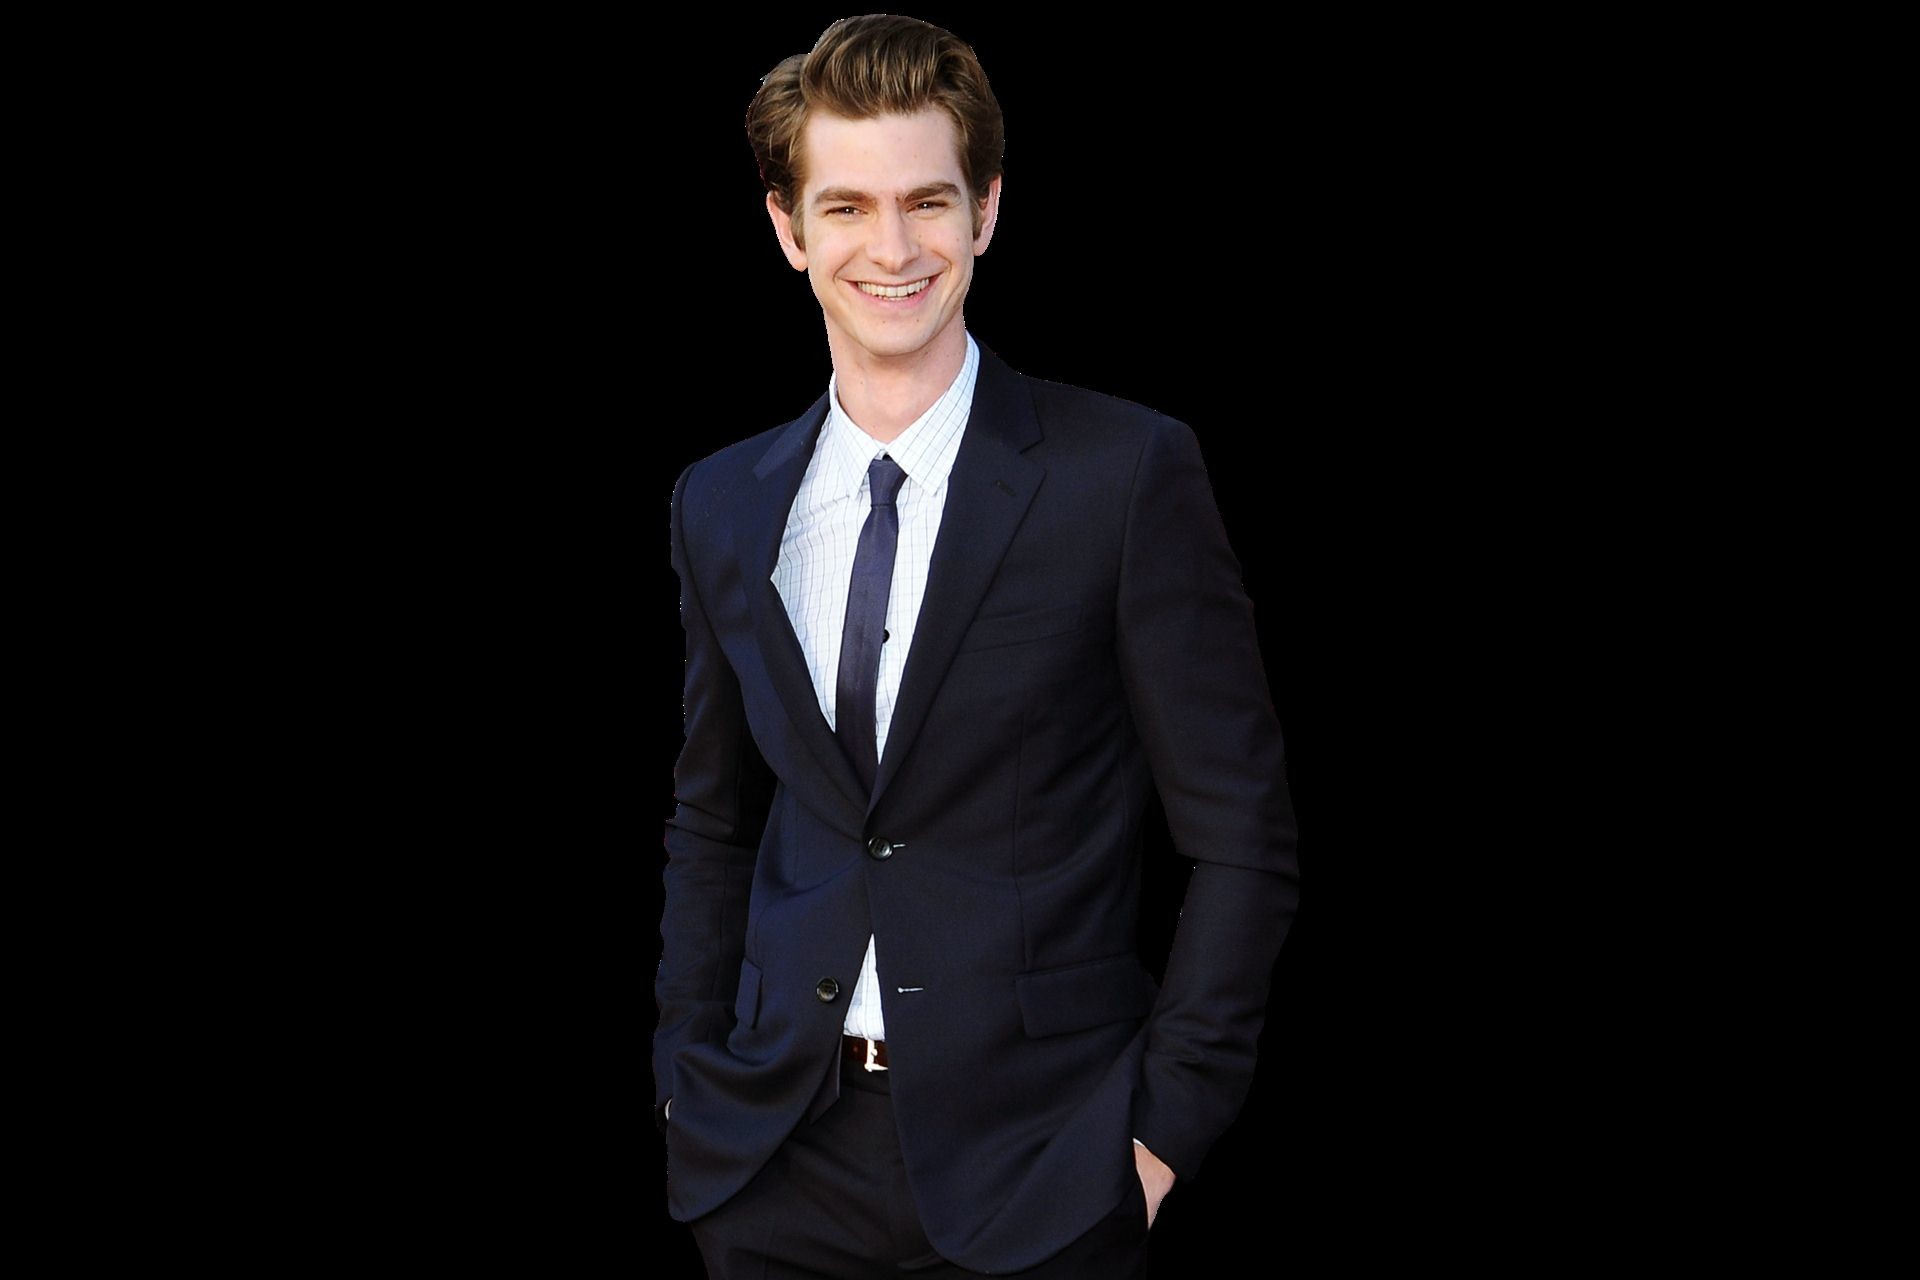 1920x1280 Download Free Andrew Garfield Wallpaper.